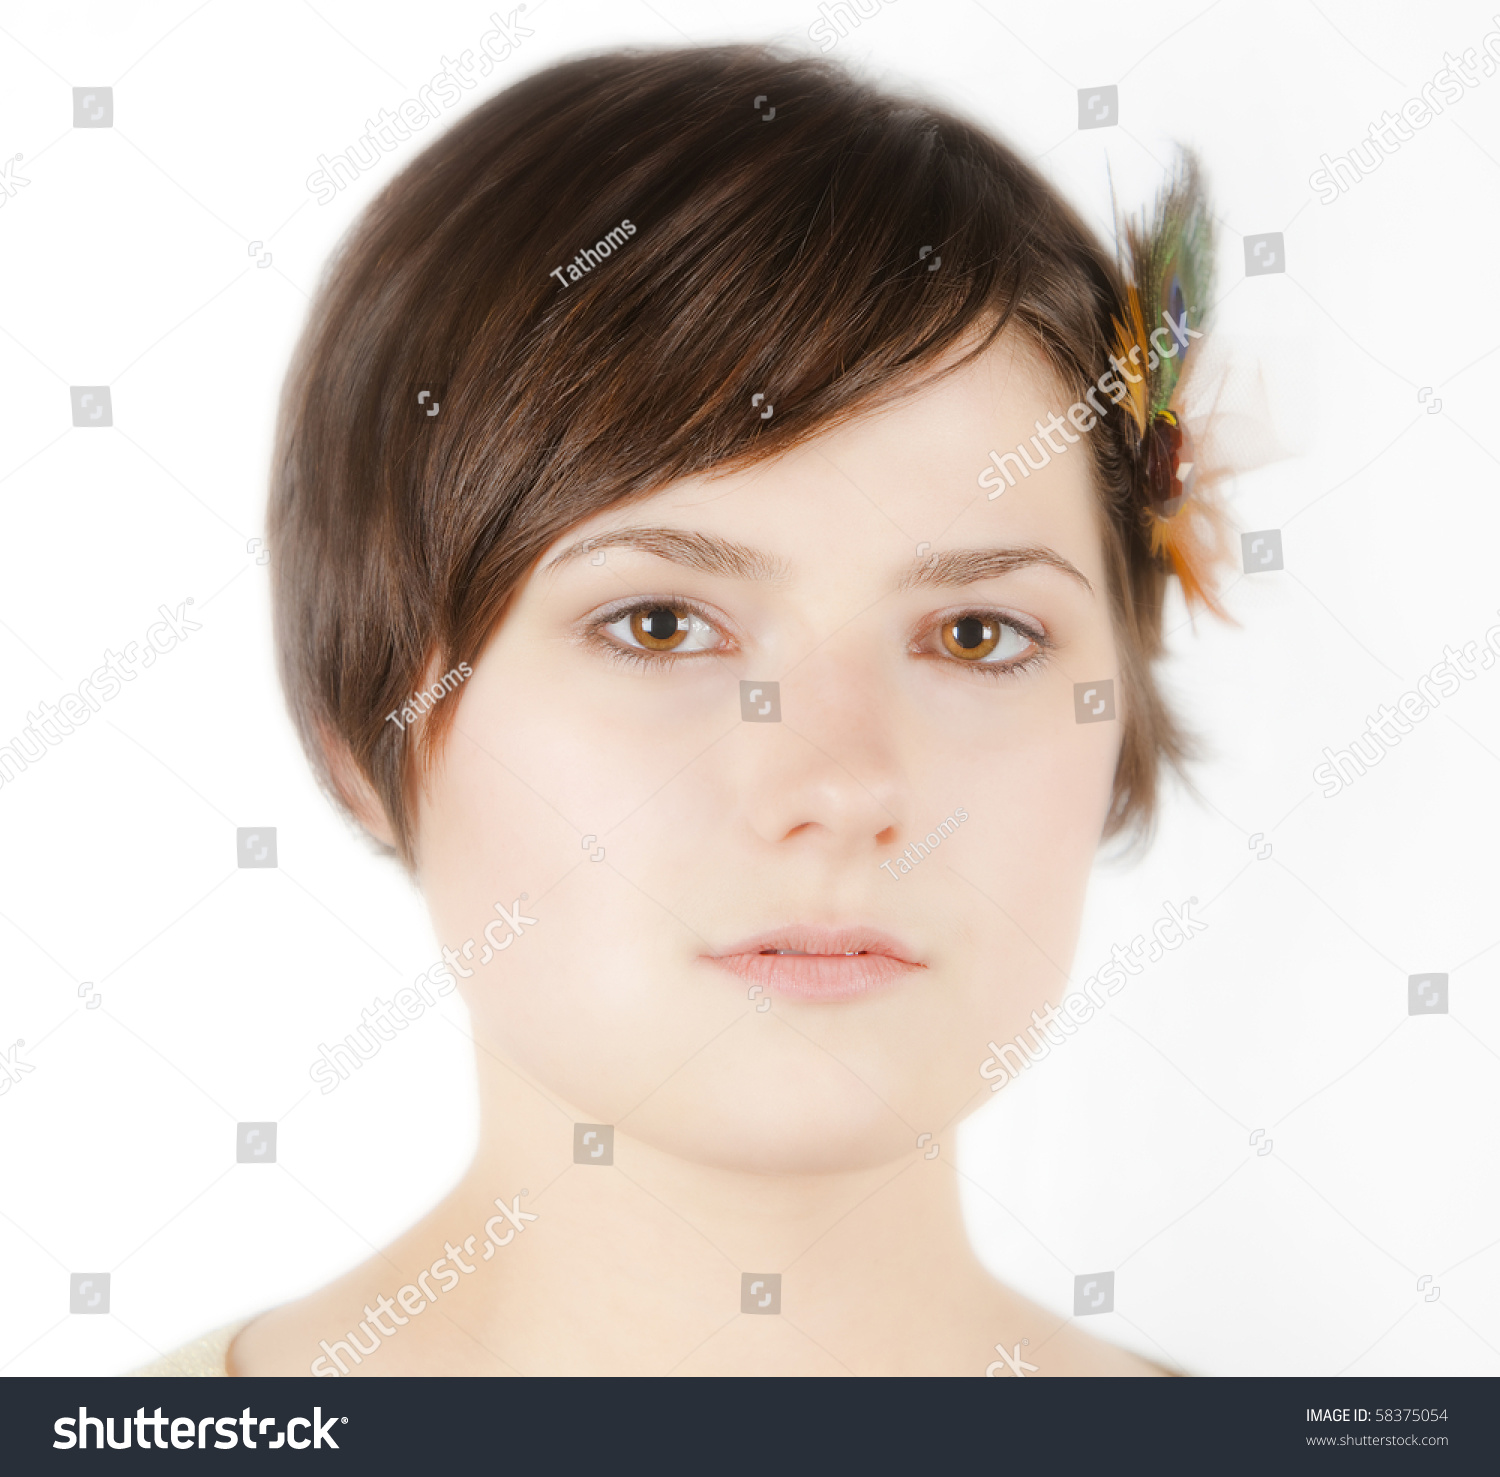 stock-photo-portrait-of-a-girl-58375054.